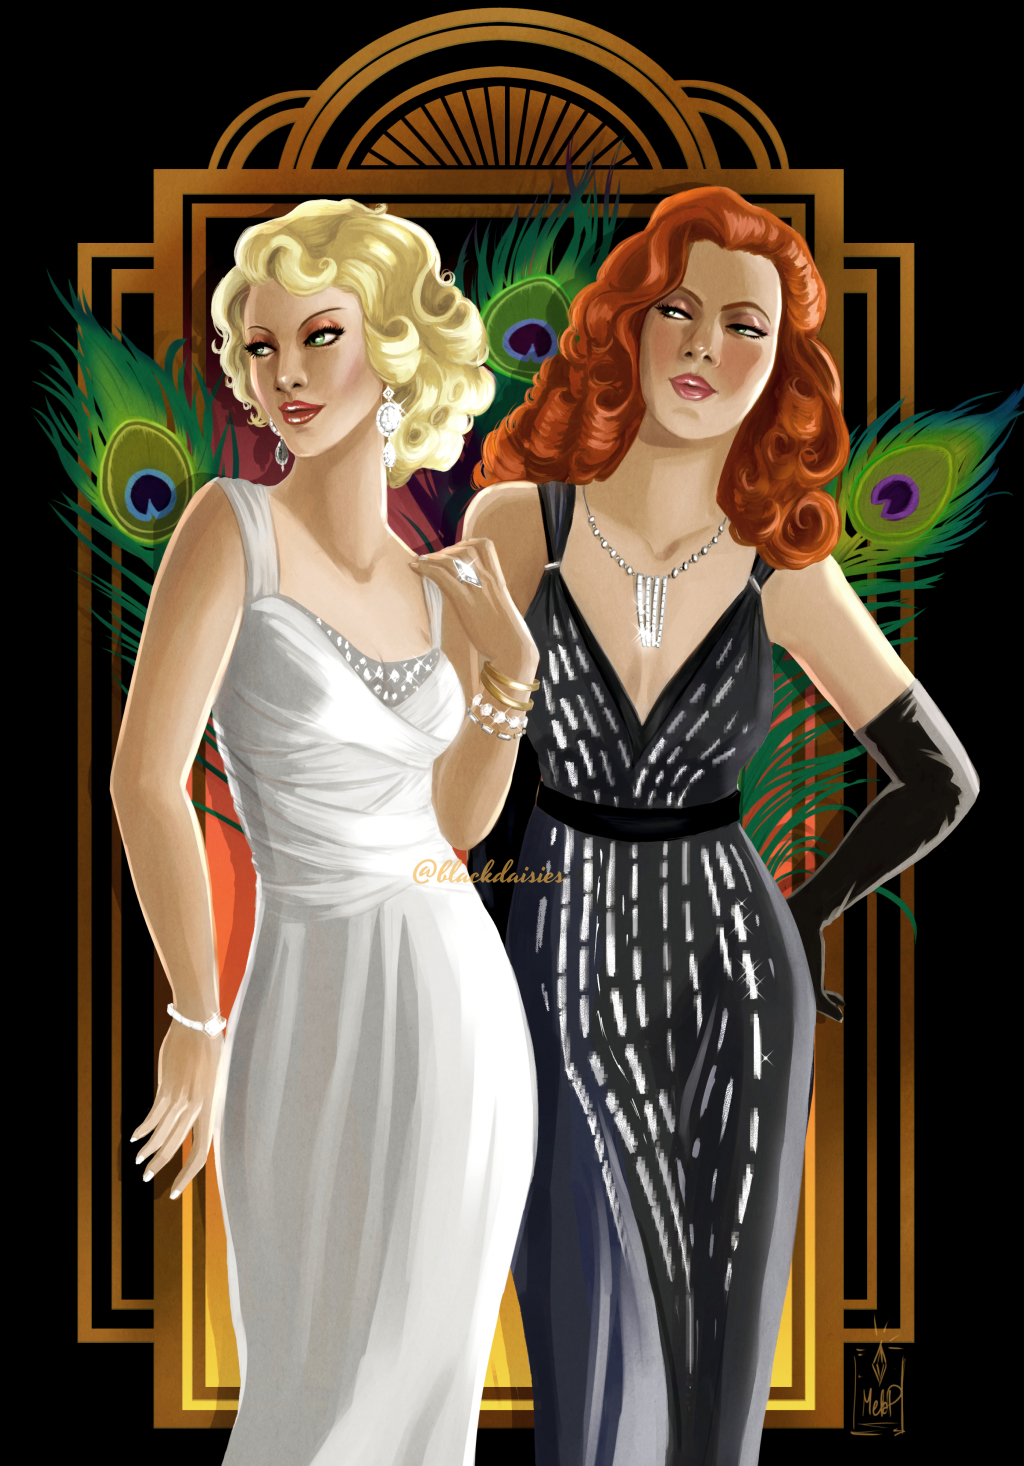 After Dark - The Caliente Sisters